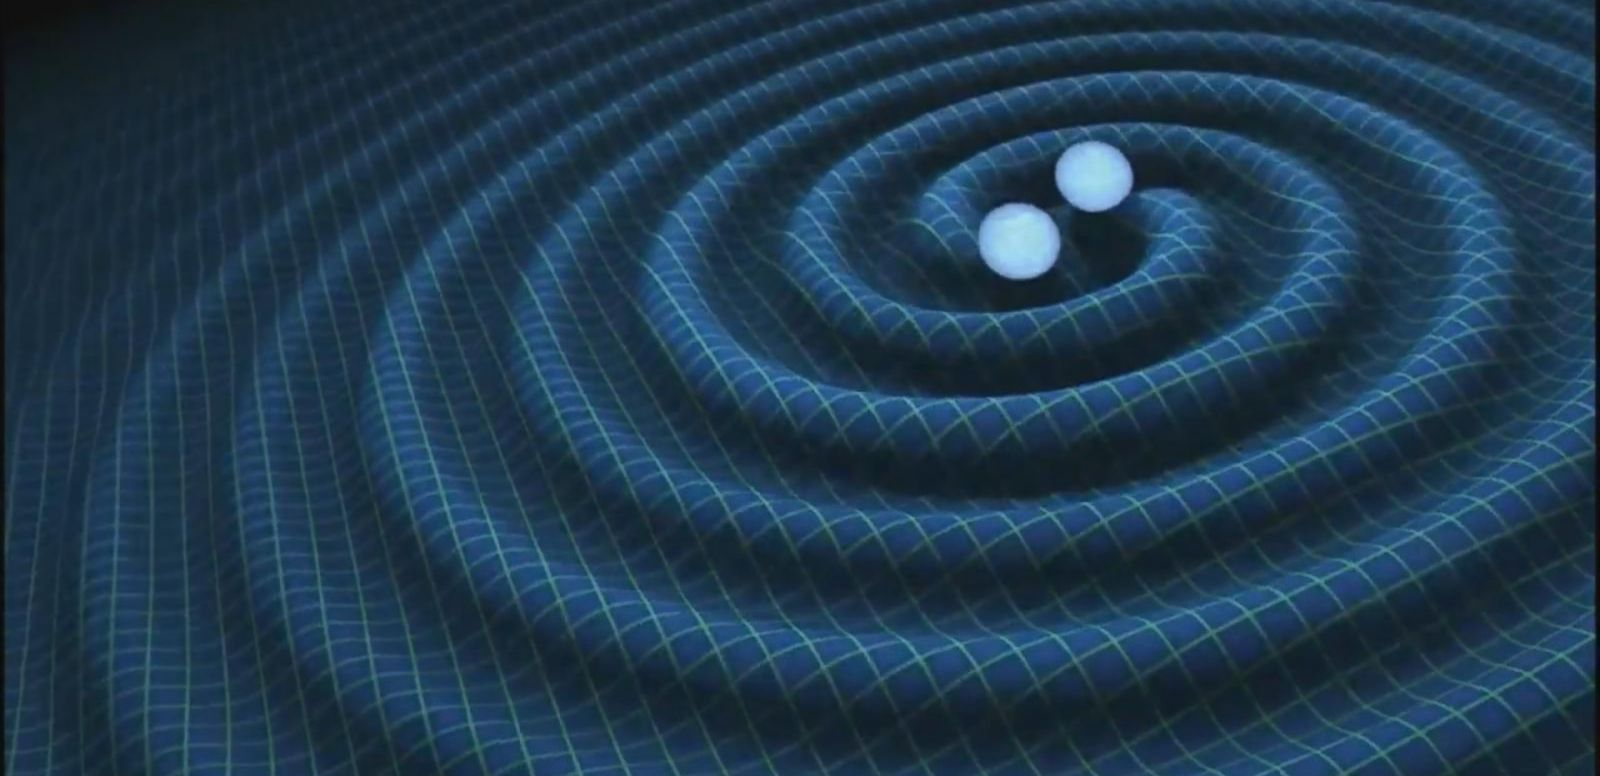 VIDEO: Scientists announced that they have finally detected the vibrations in space and time first predicted by Albert Einstein 100 years ago.